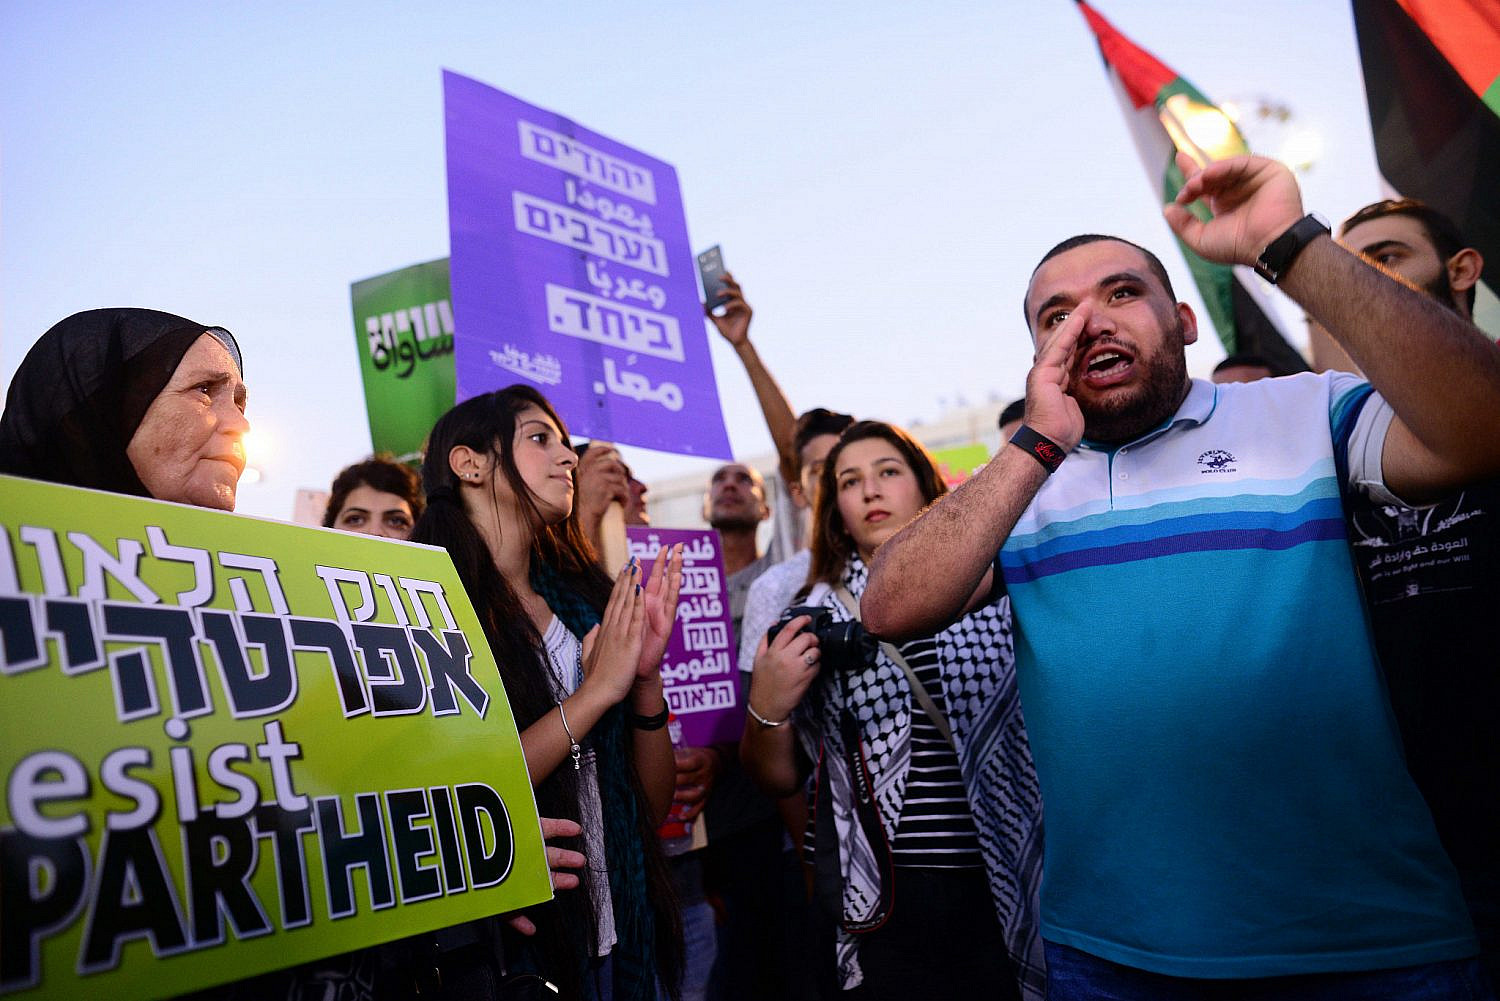 Palestinian citizens of Israel and activists protest against the 'Jewish Nation-State Law' in Tel Aviv, Aug. 11, 2018. (Tomer Neuberg/Flash90)